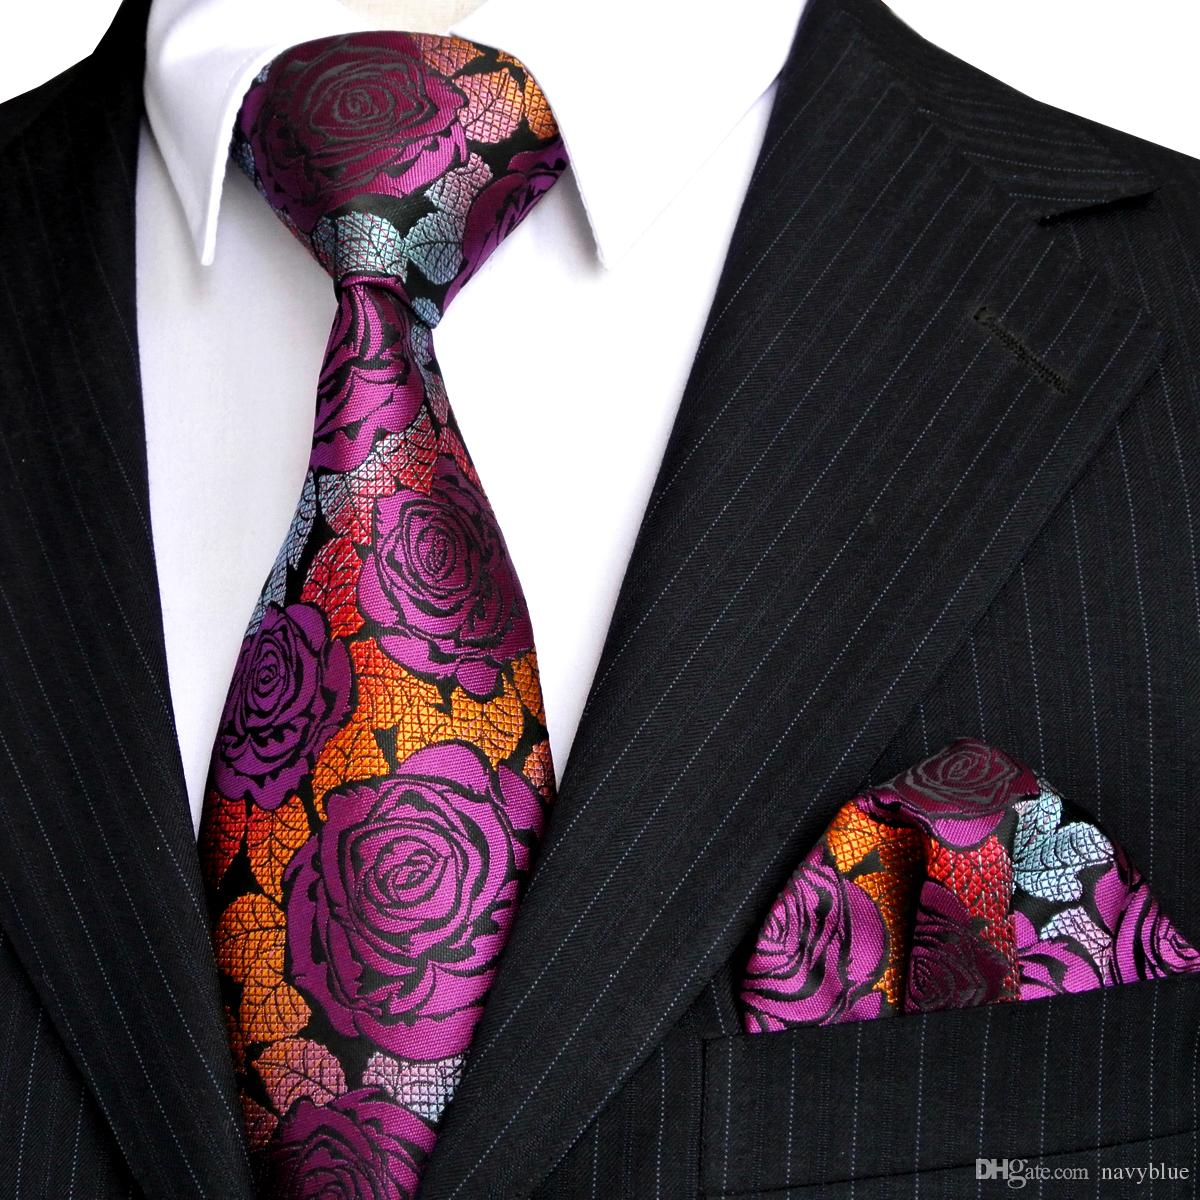 424165c50680 E12 Men'S Tie Sets Rose Multicolor Fuchsia Red Yellow Blue Floral Neckties  Pocket Square 100% Silk New Wholesale Satin Blouse Tie Bow Tie From  Navyblue, ...